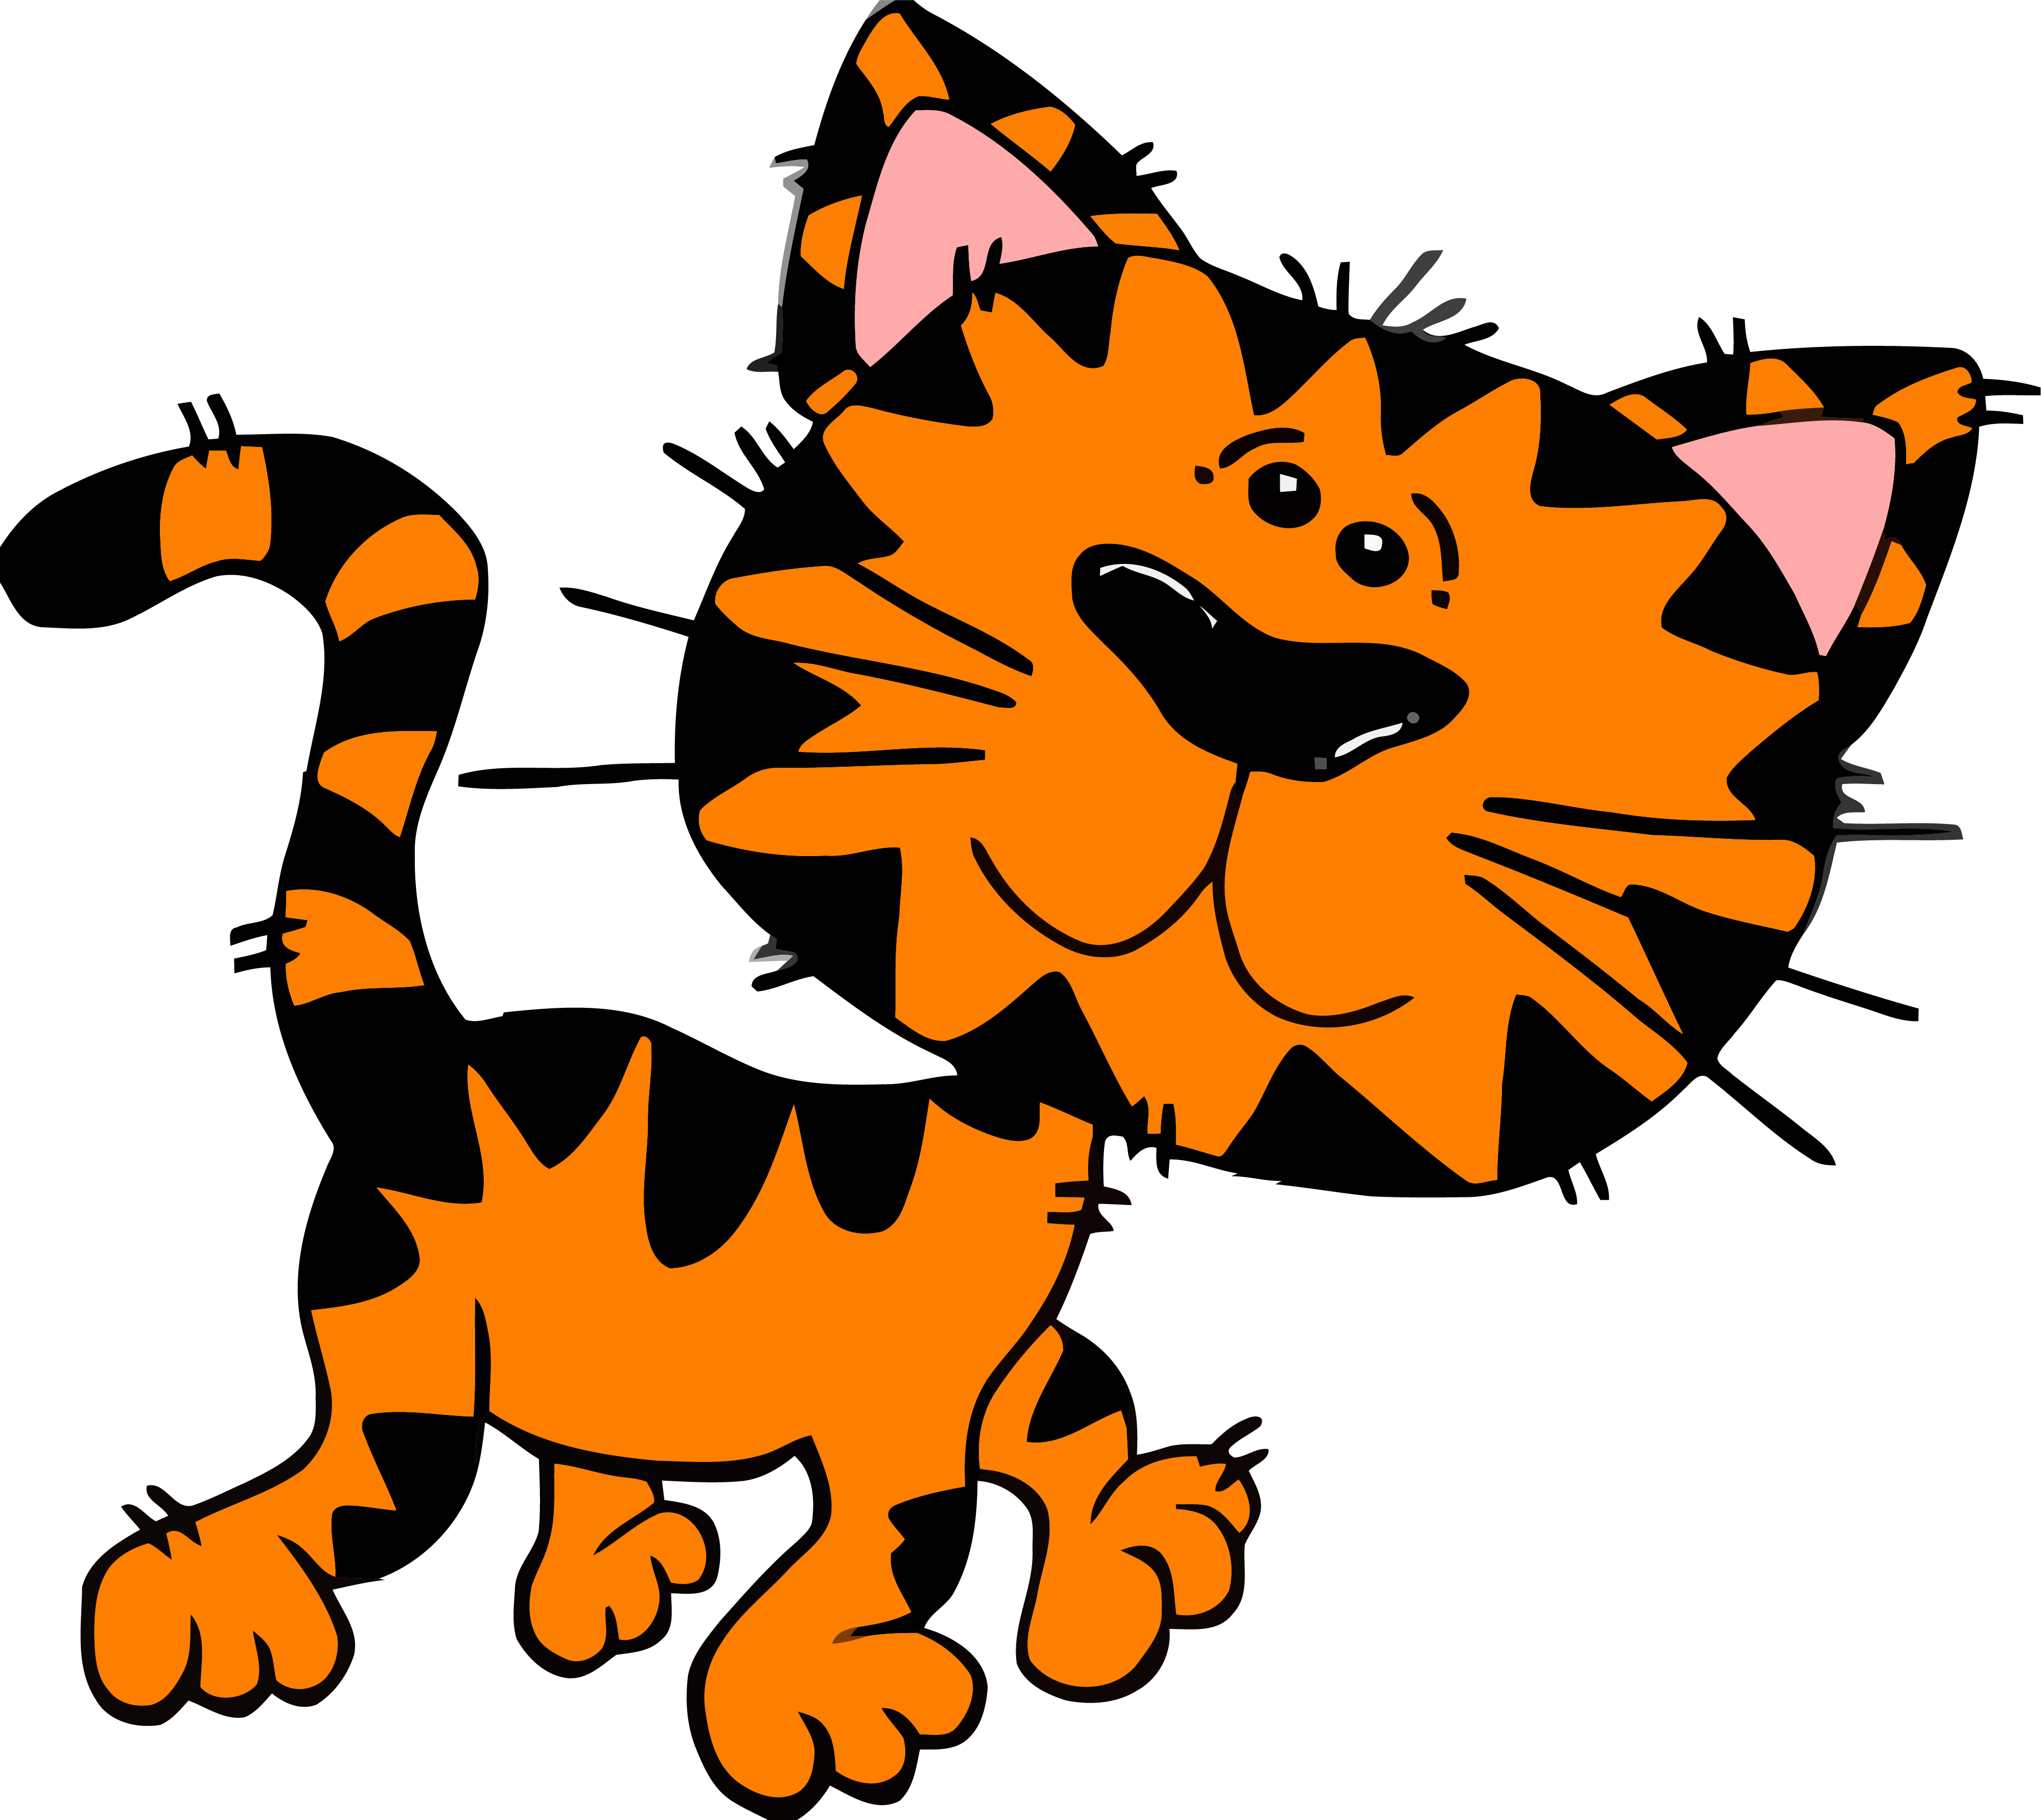 Front of a cat clipart image royalty free stock Cartoon Cat Tigger Clipart Png Image Download - Clipartly ... image royalty free stock